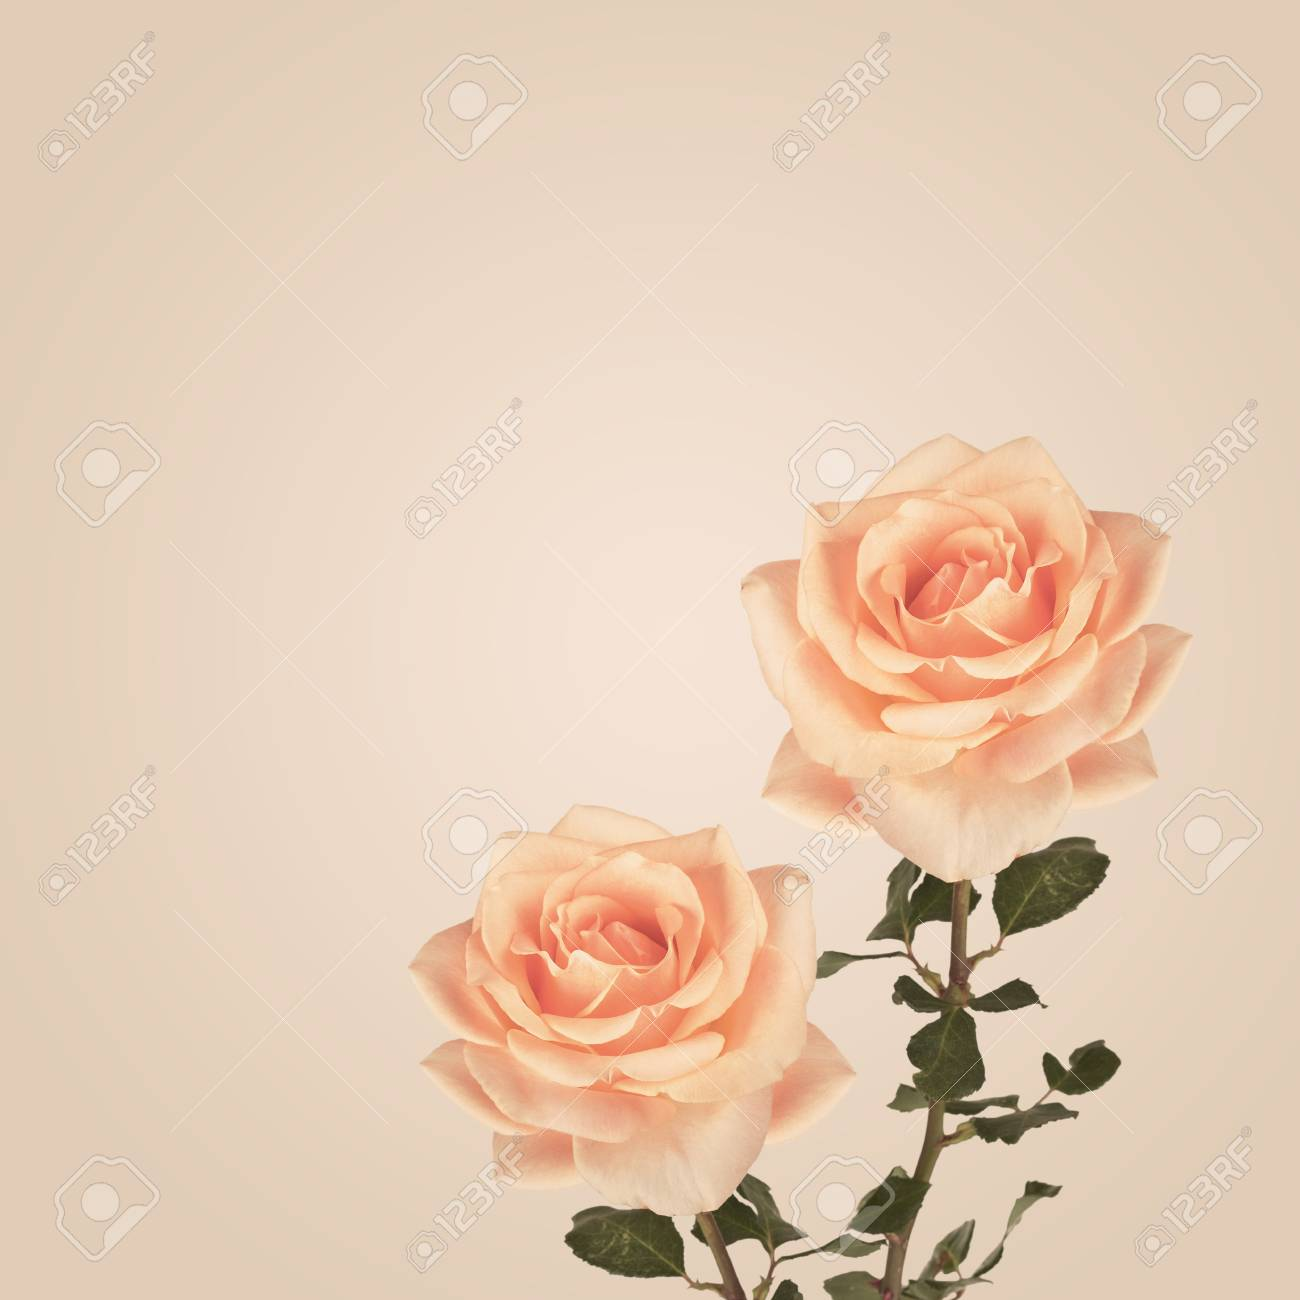 Fiori Vintage.Vintage Background With Roses Flowers Retro Backdrop Stock Photo